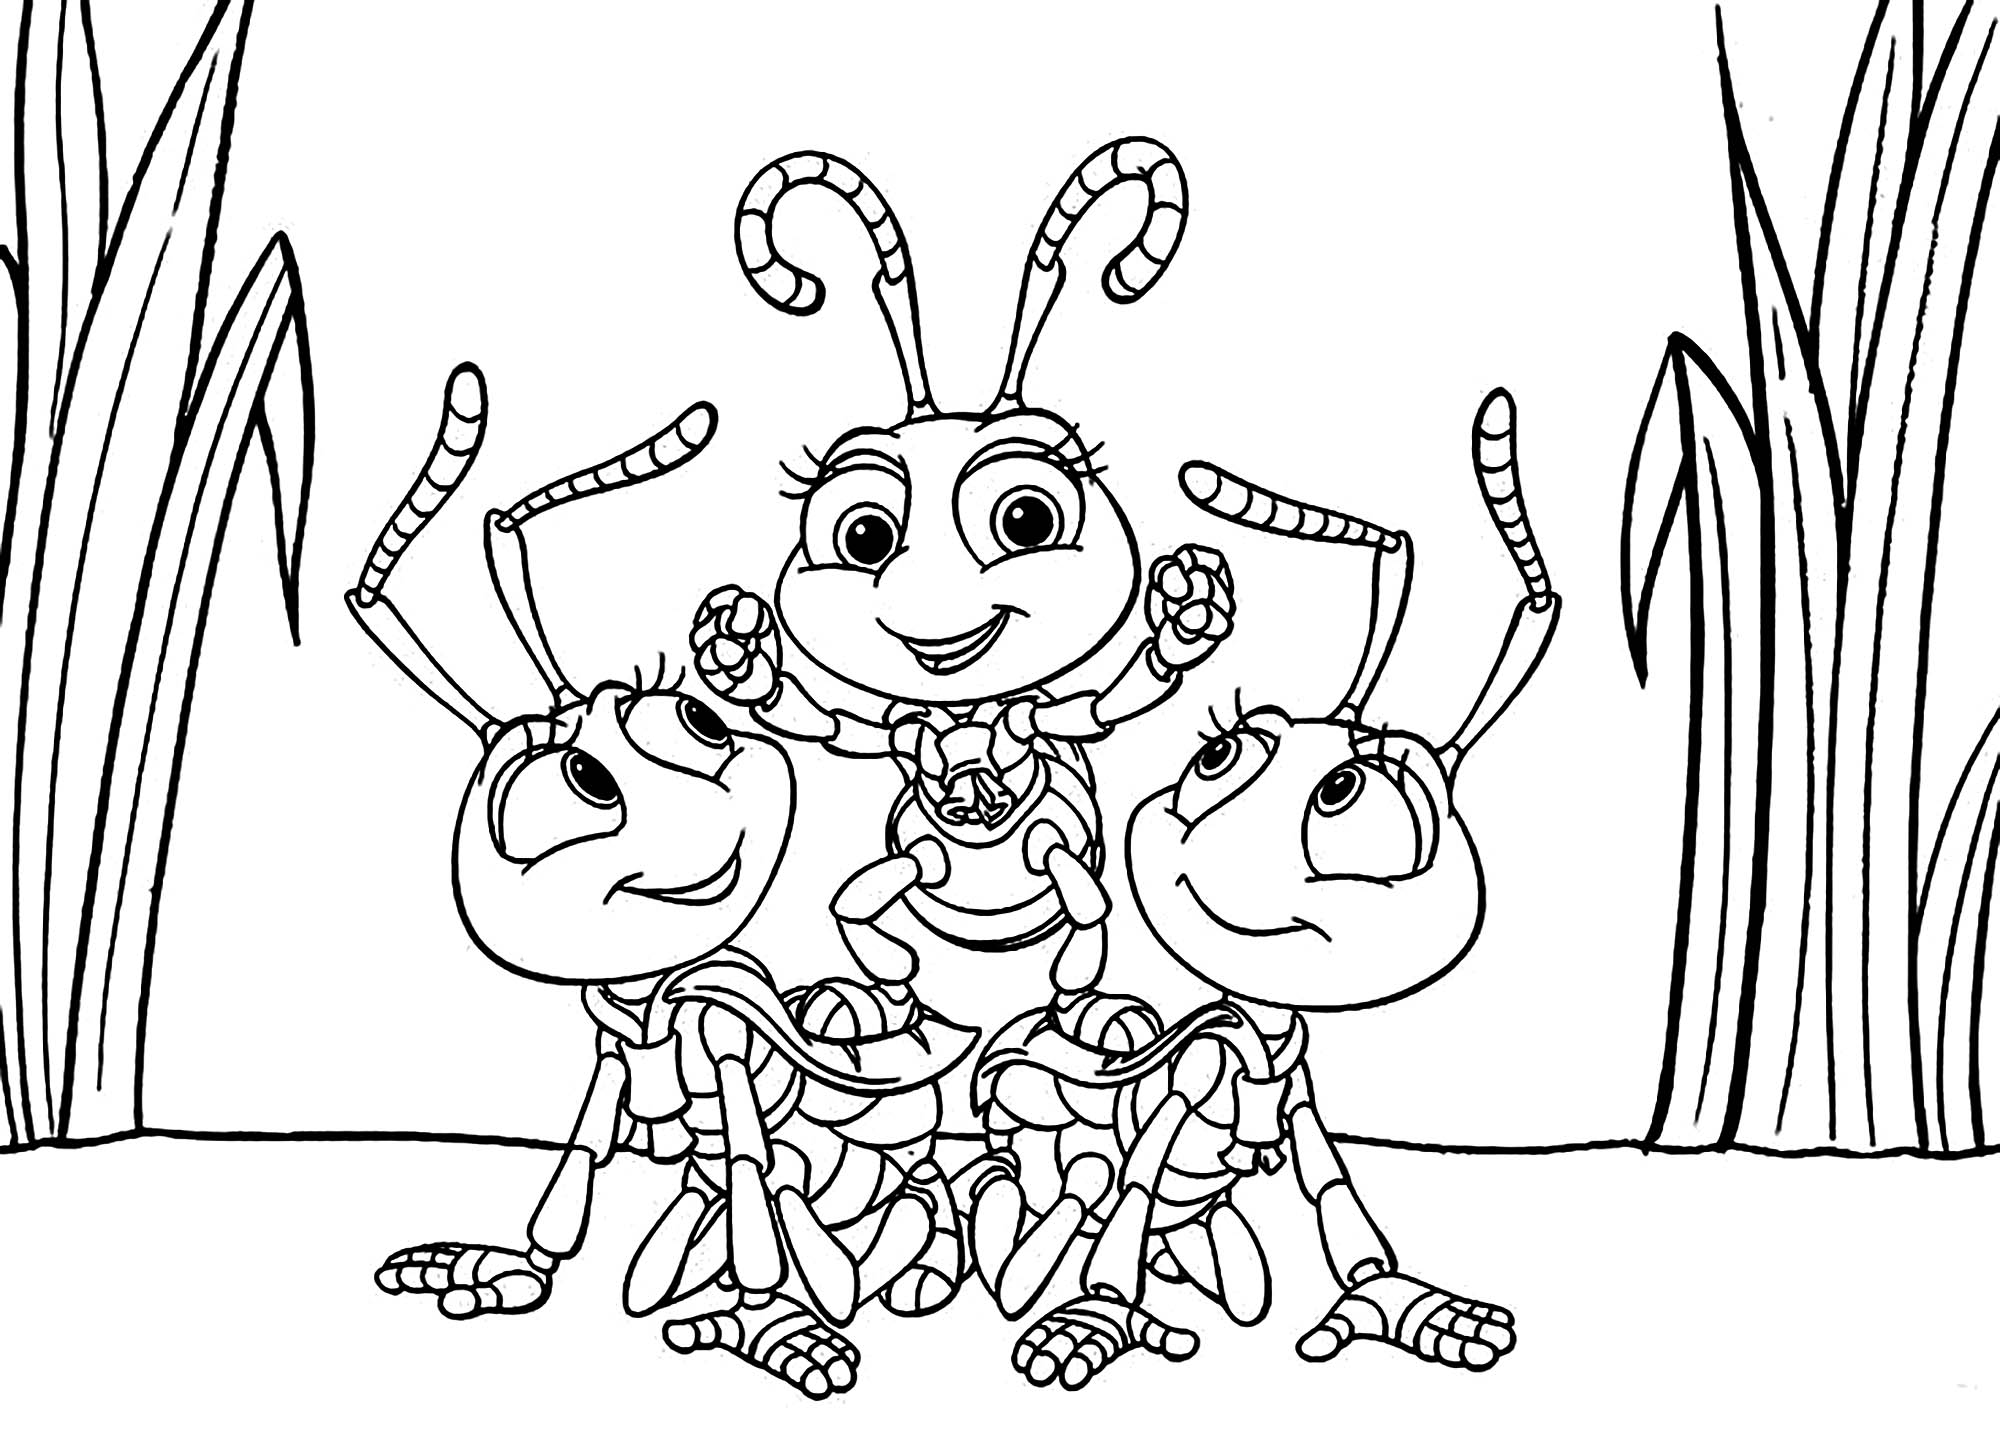 coloring pages bugs bug museum bug coloring pages ladybug 2 coloring pages bugs